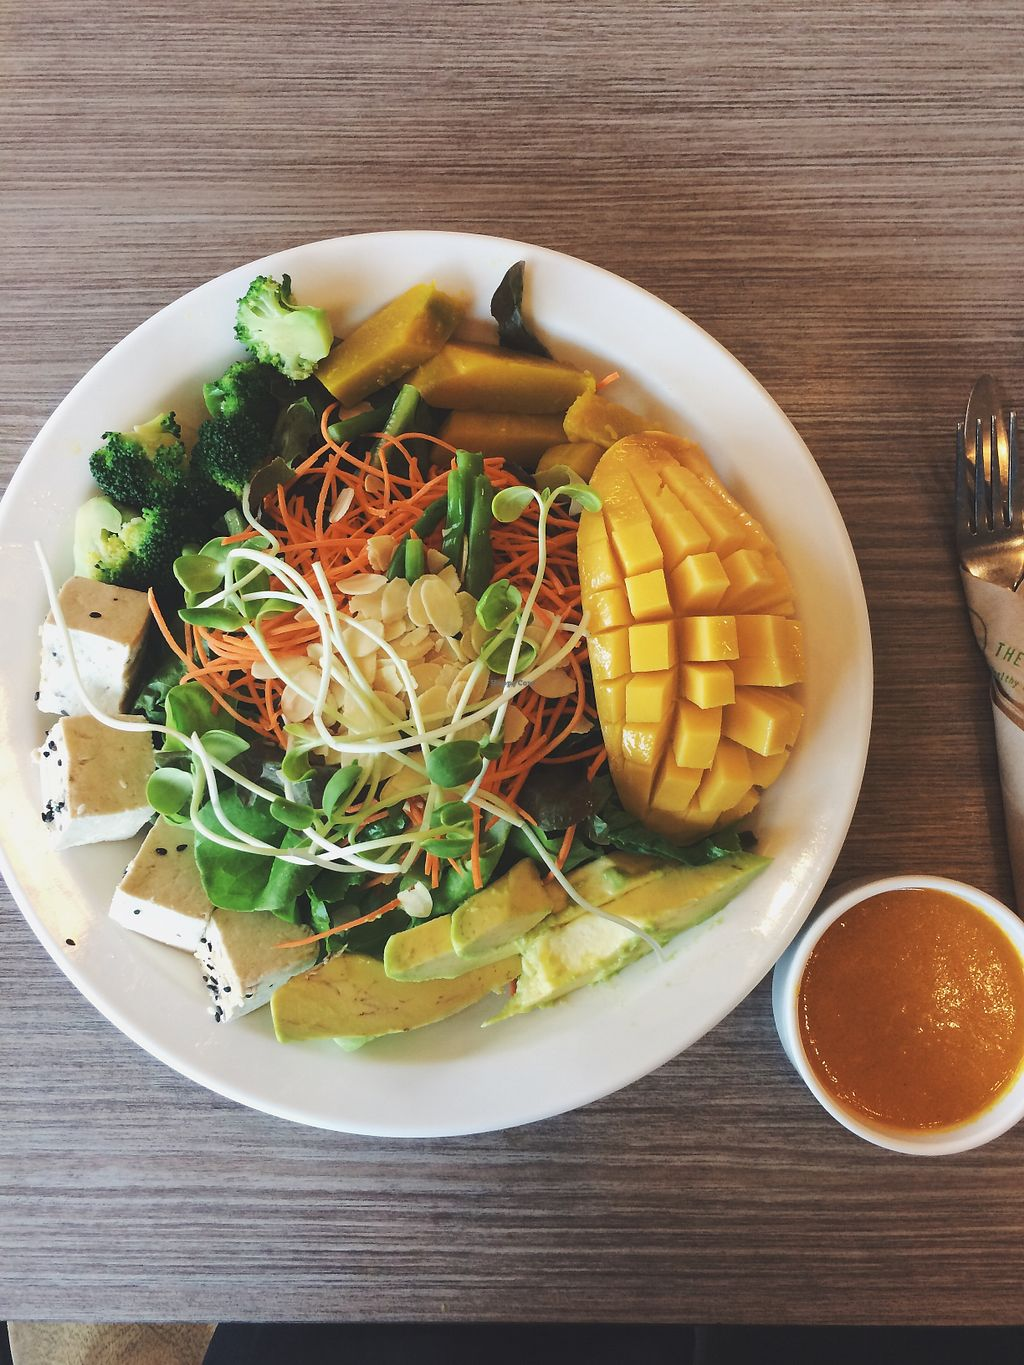 """Photo of The Salad Concept  by <a href=""""/members/profile/peasandunderstanding"""">peasandunderstanding</a> <br/>A DIY salad with added toppings such as mango, blanched almonds, pumpkin, avocado and some (rather bland) tofu.  <br/> April 28, 2018  - <a href='/contact/abuse/image/108286/391976'>Report</a>"""